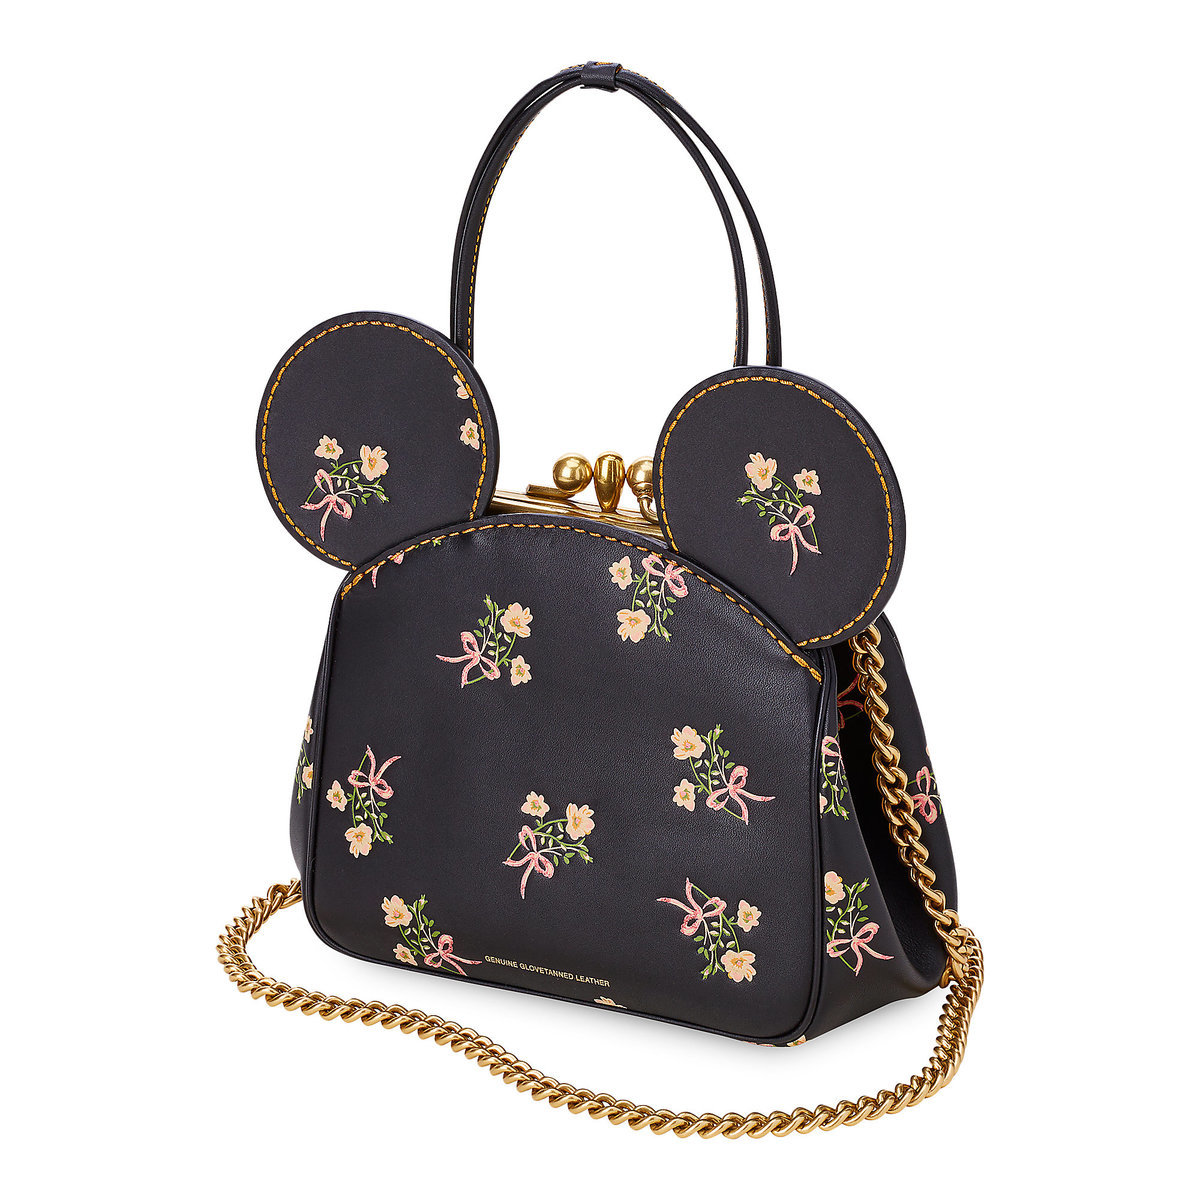 7b1384b050ce9 Product Image of Minnie Mouse Floral Kisslock Leather Bag by COACH - Black    1